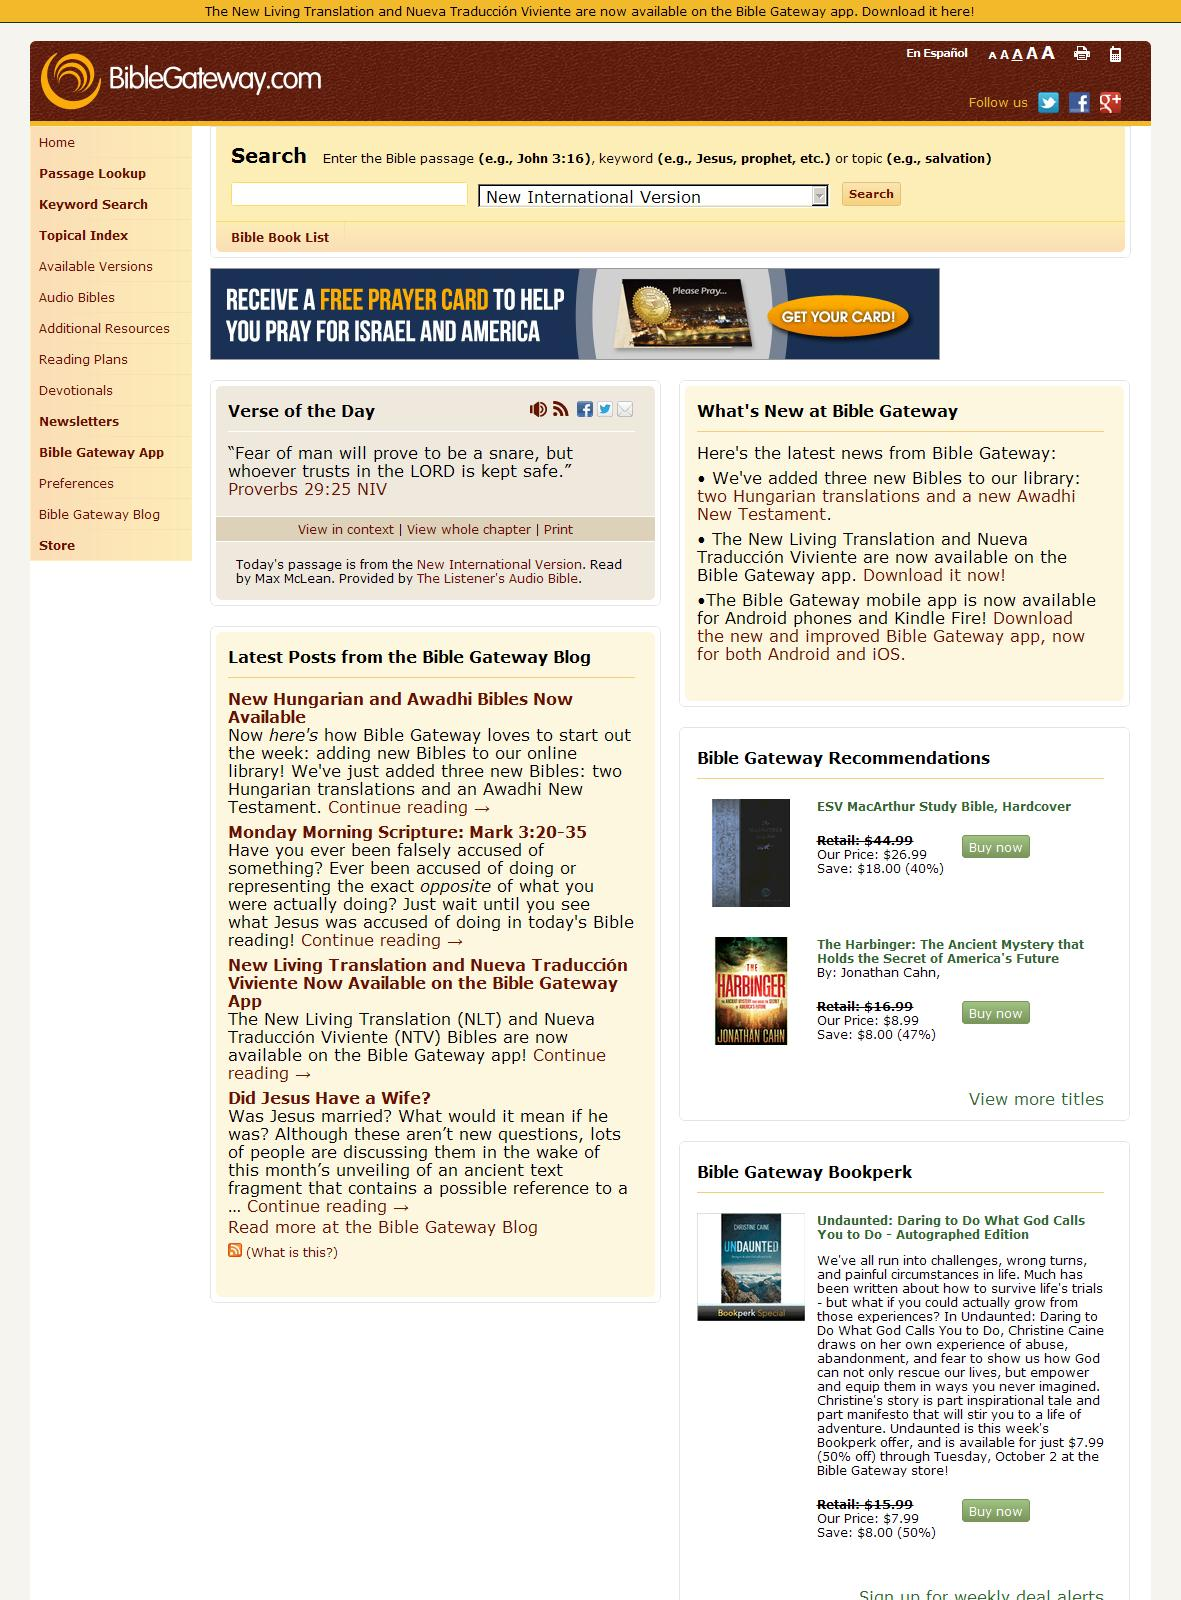 BibleGateway.com: A searchable online Bible in over 100 versions and 50 languages.